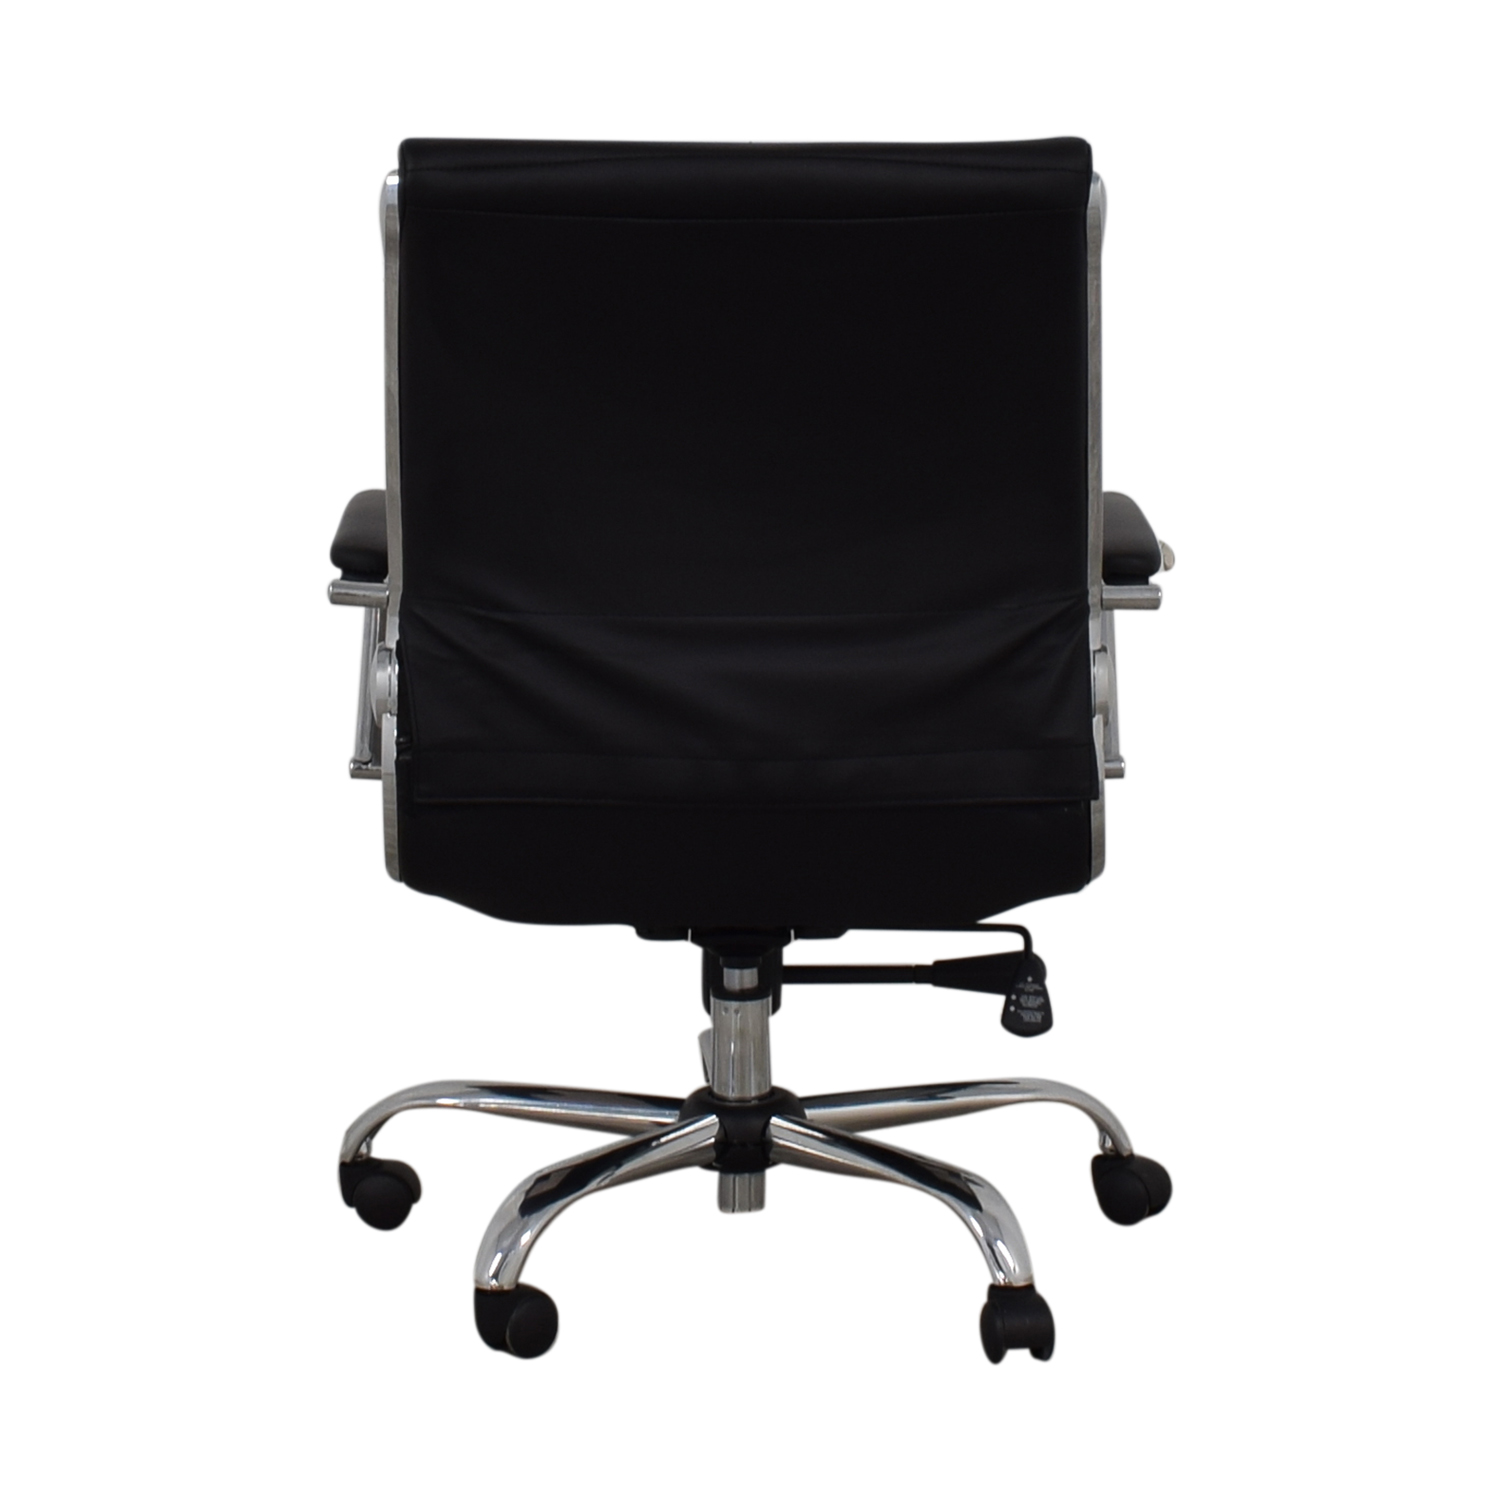 Staples Staples Adjustable Black Office Chair Chairs